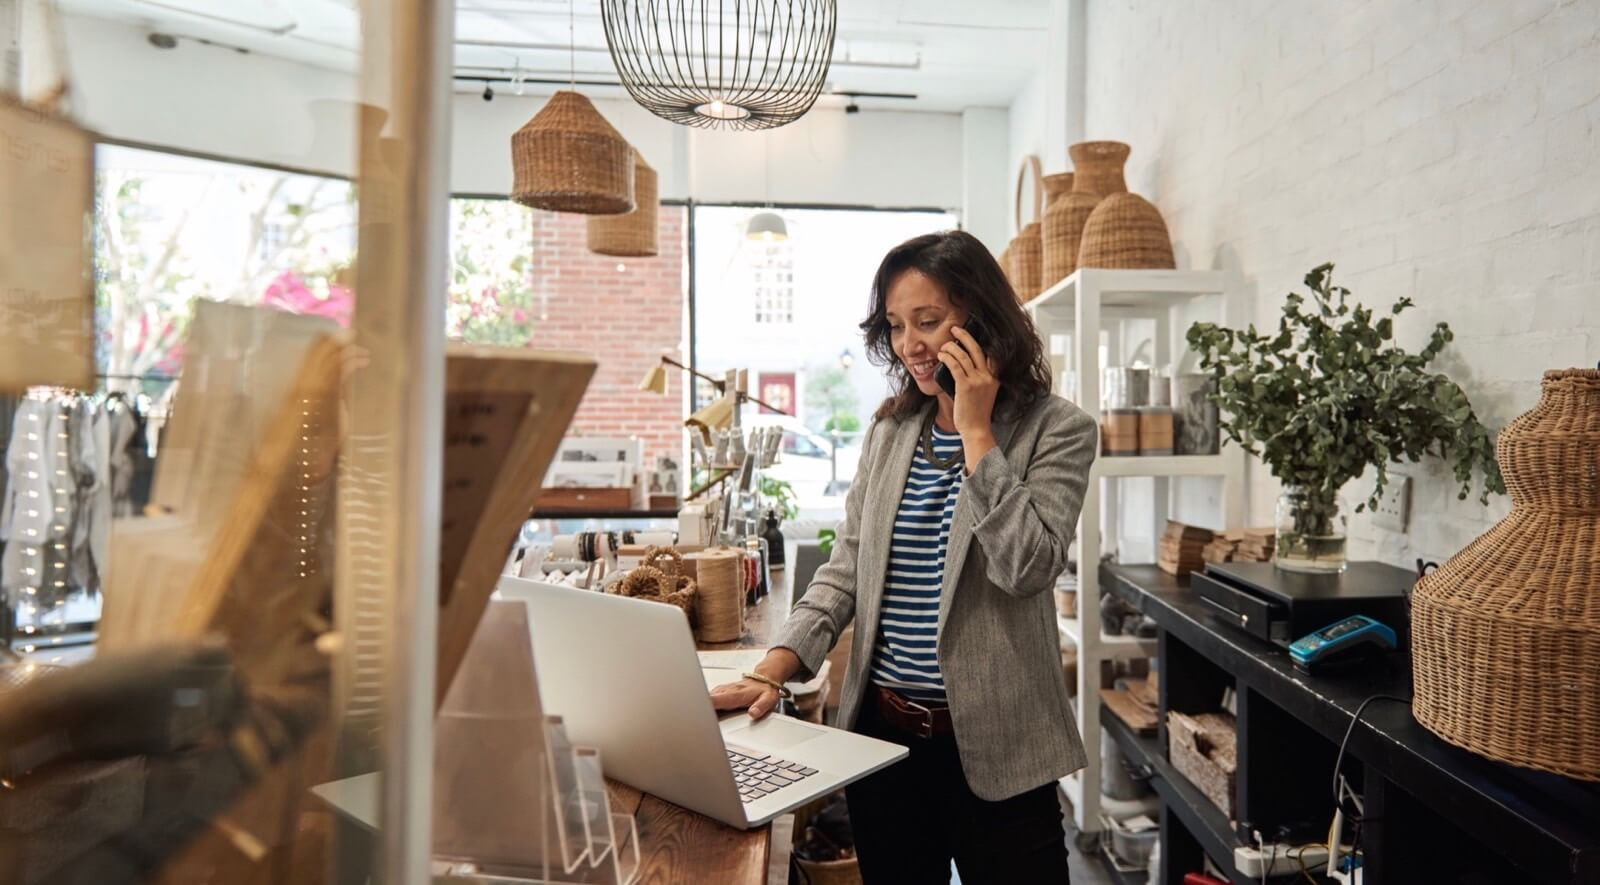 Female Store Owner Planning Retail Operations On Laptop